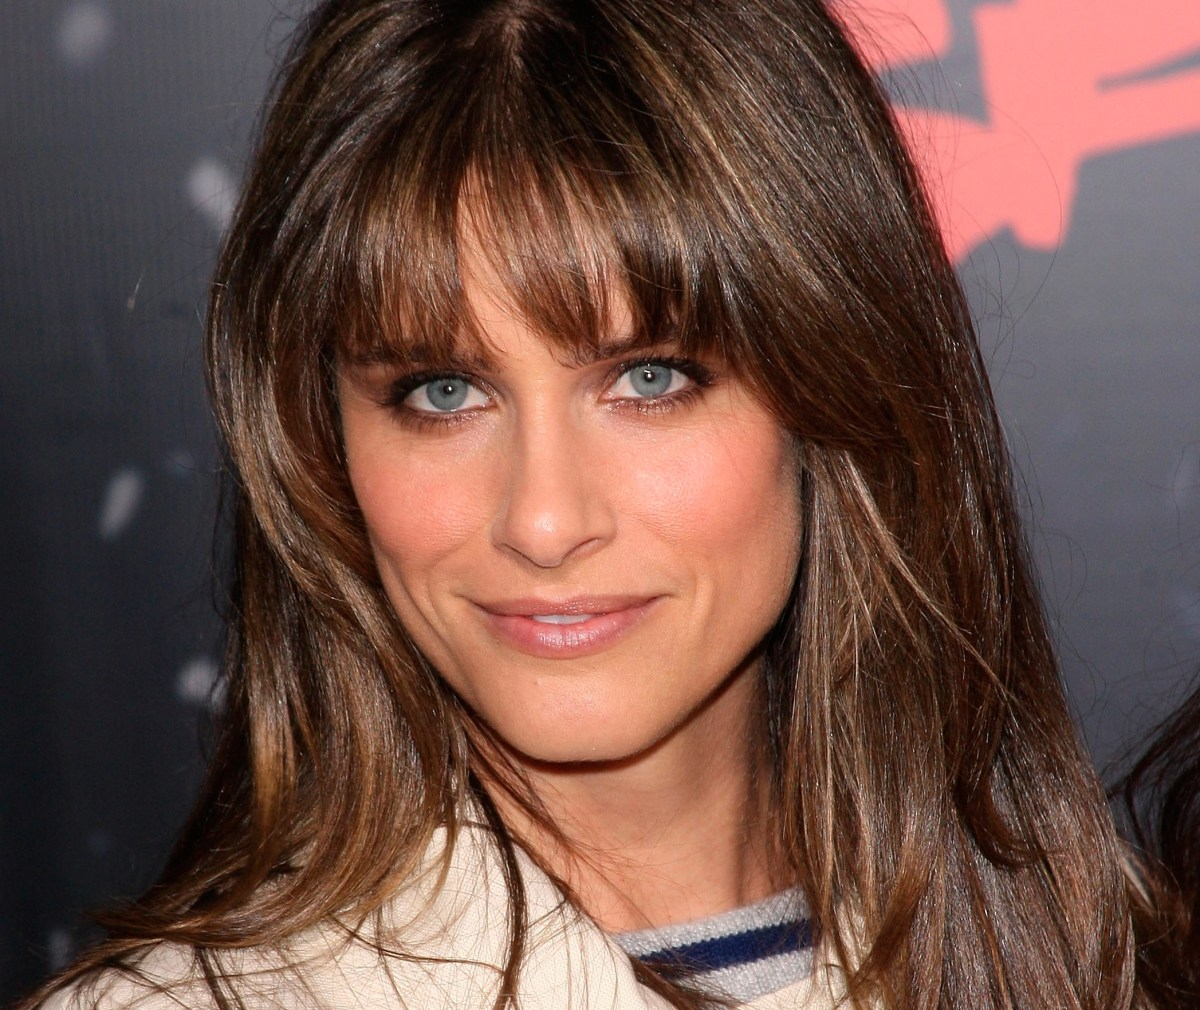 Amanda Peet Slays Us With This Striking Essay On Aging As An